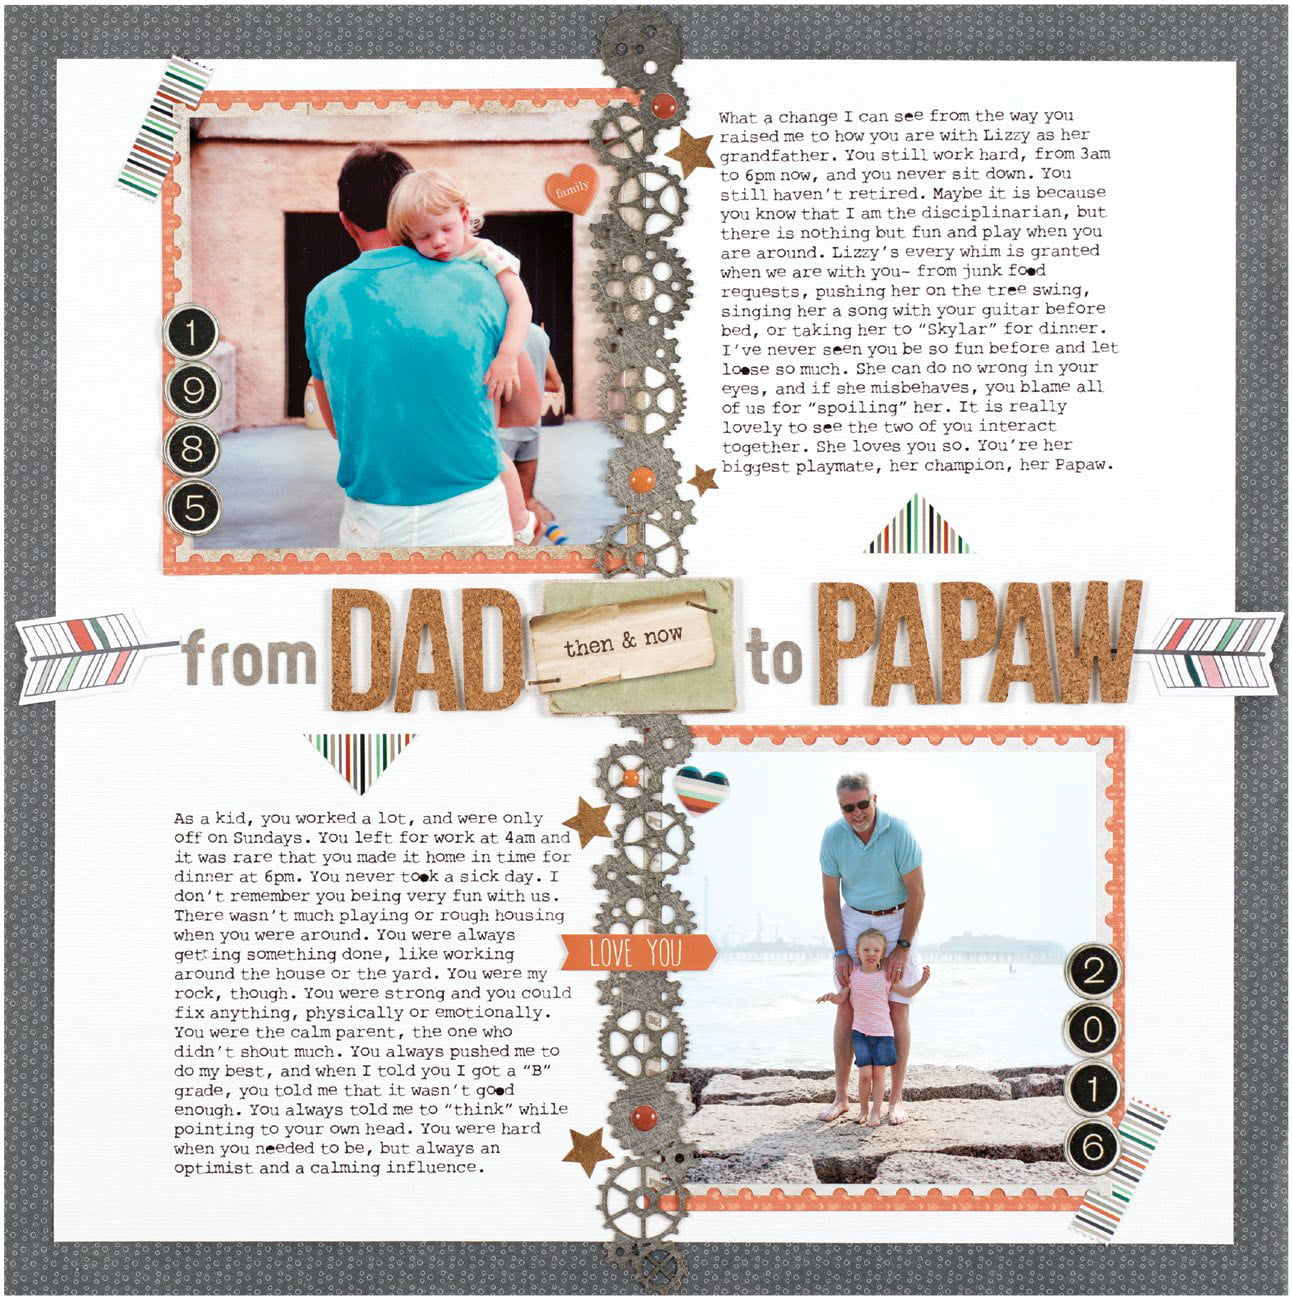 From Dad to Papaw by Meghann Andrew - Scrapbook & Cards Today Spring 2018